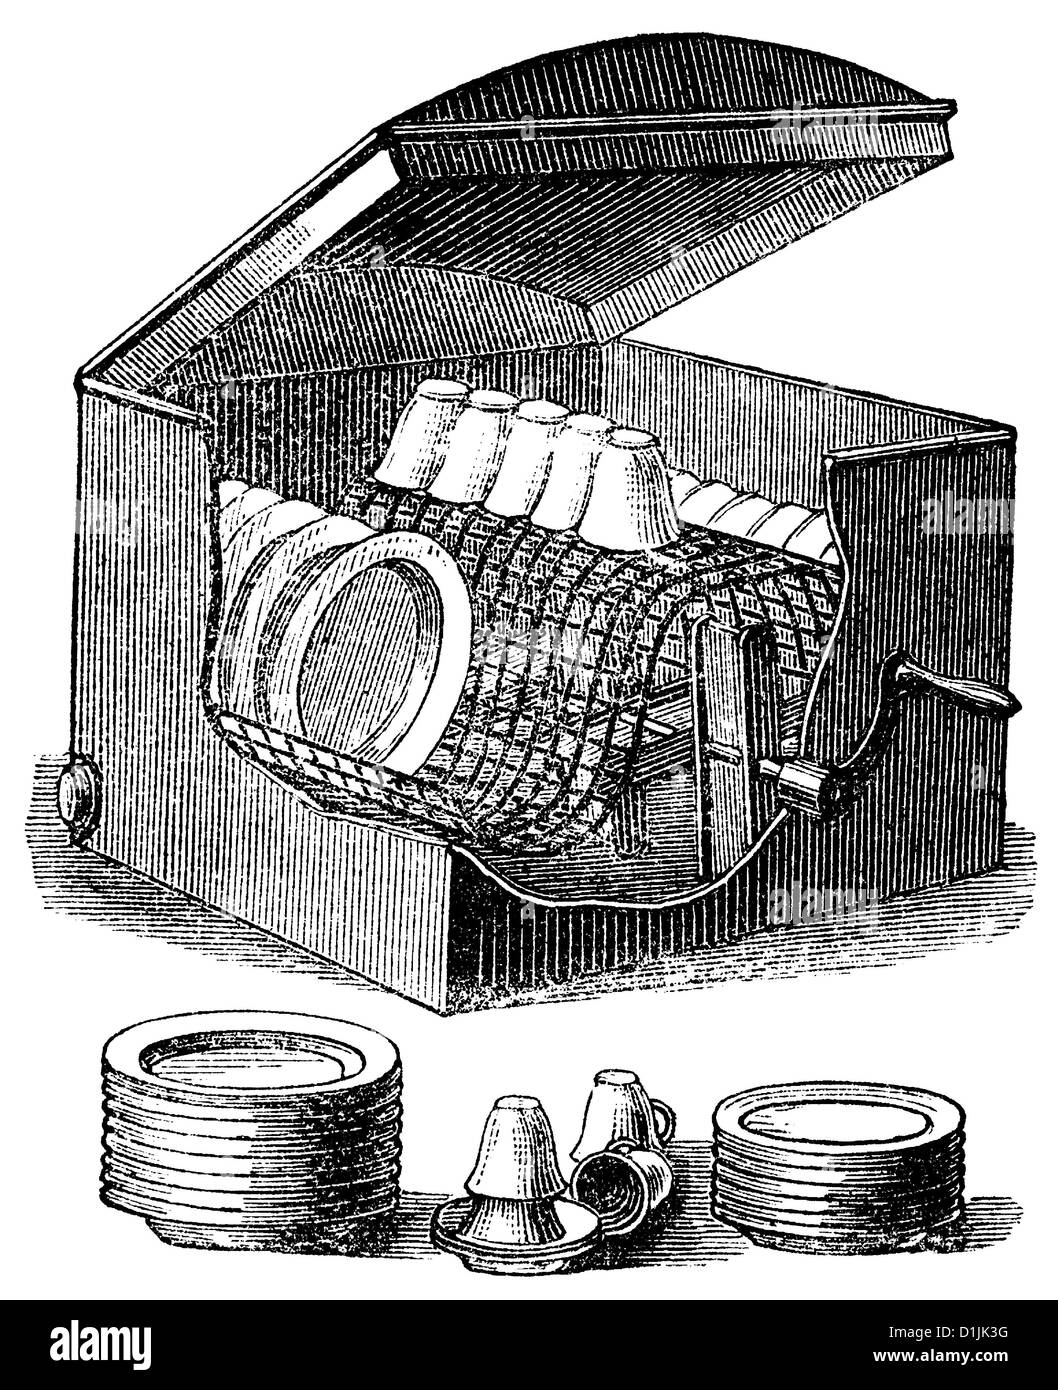 19th century, a mechanical dish washer driven by a hand crank, around 1880, - Stock Image